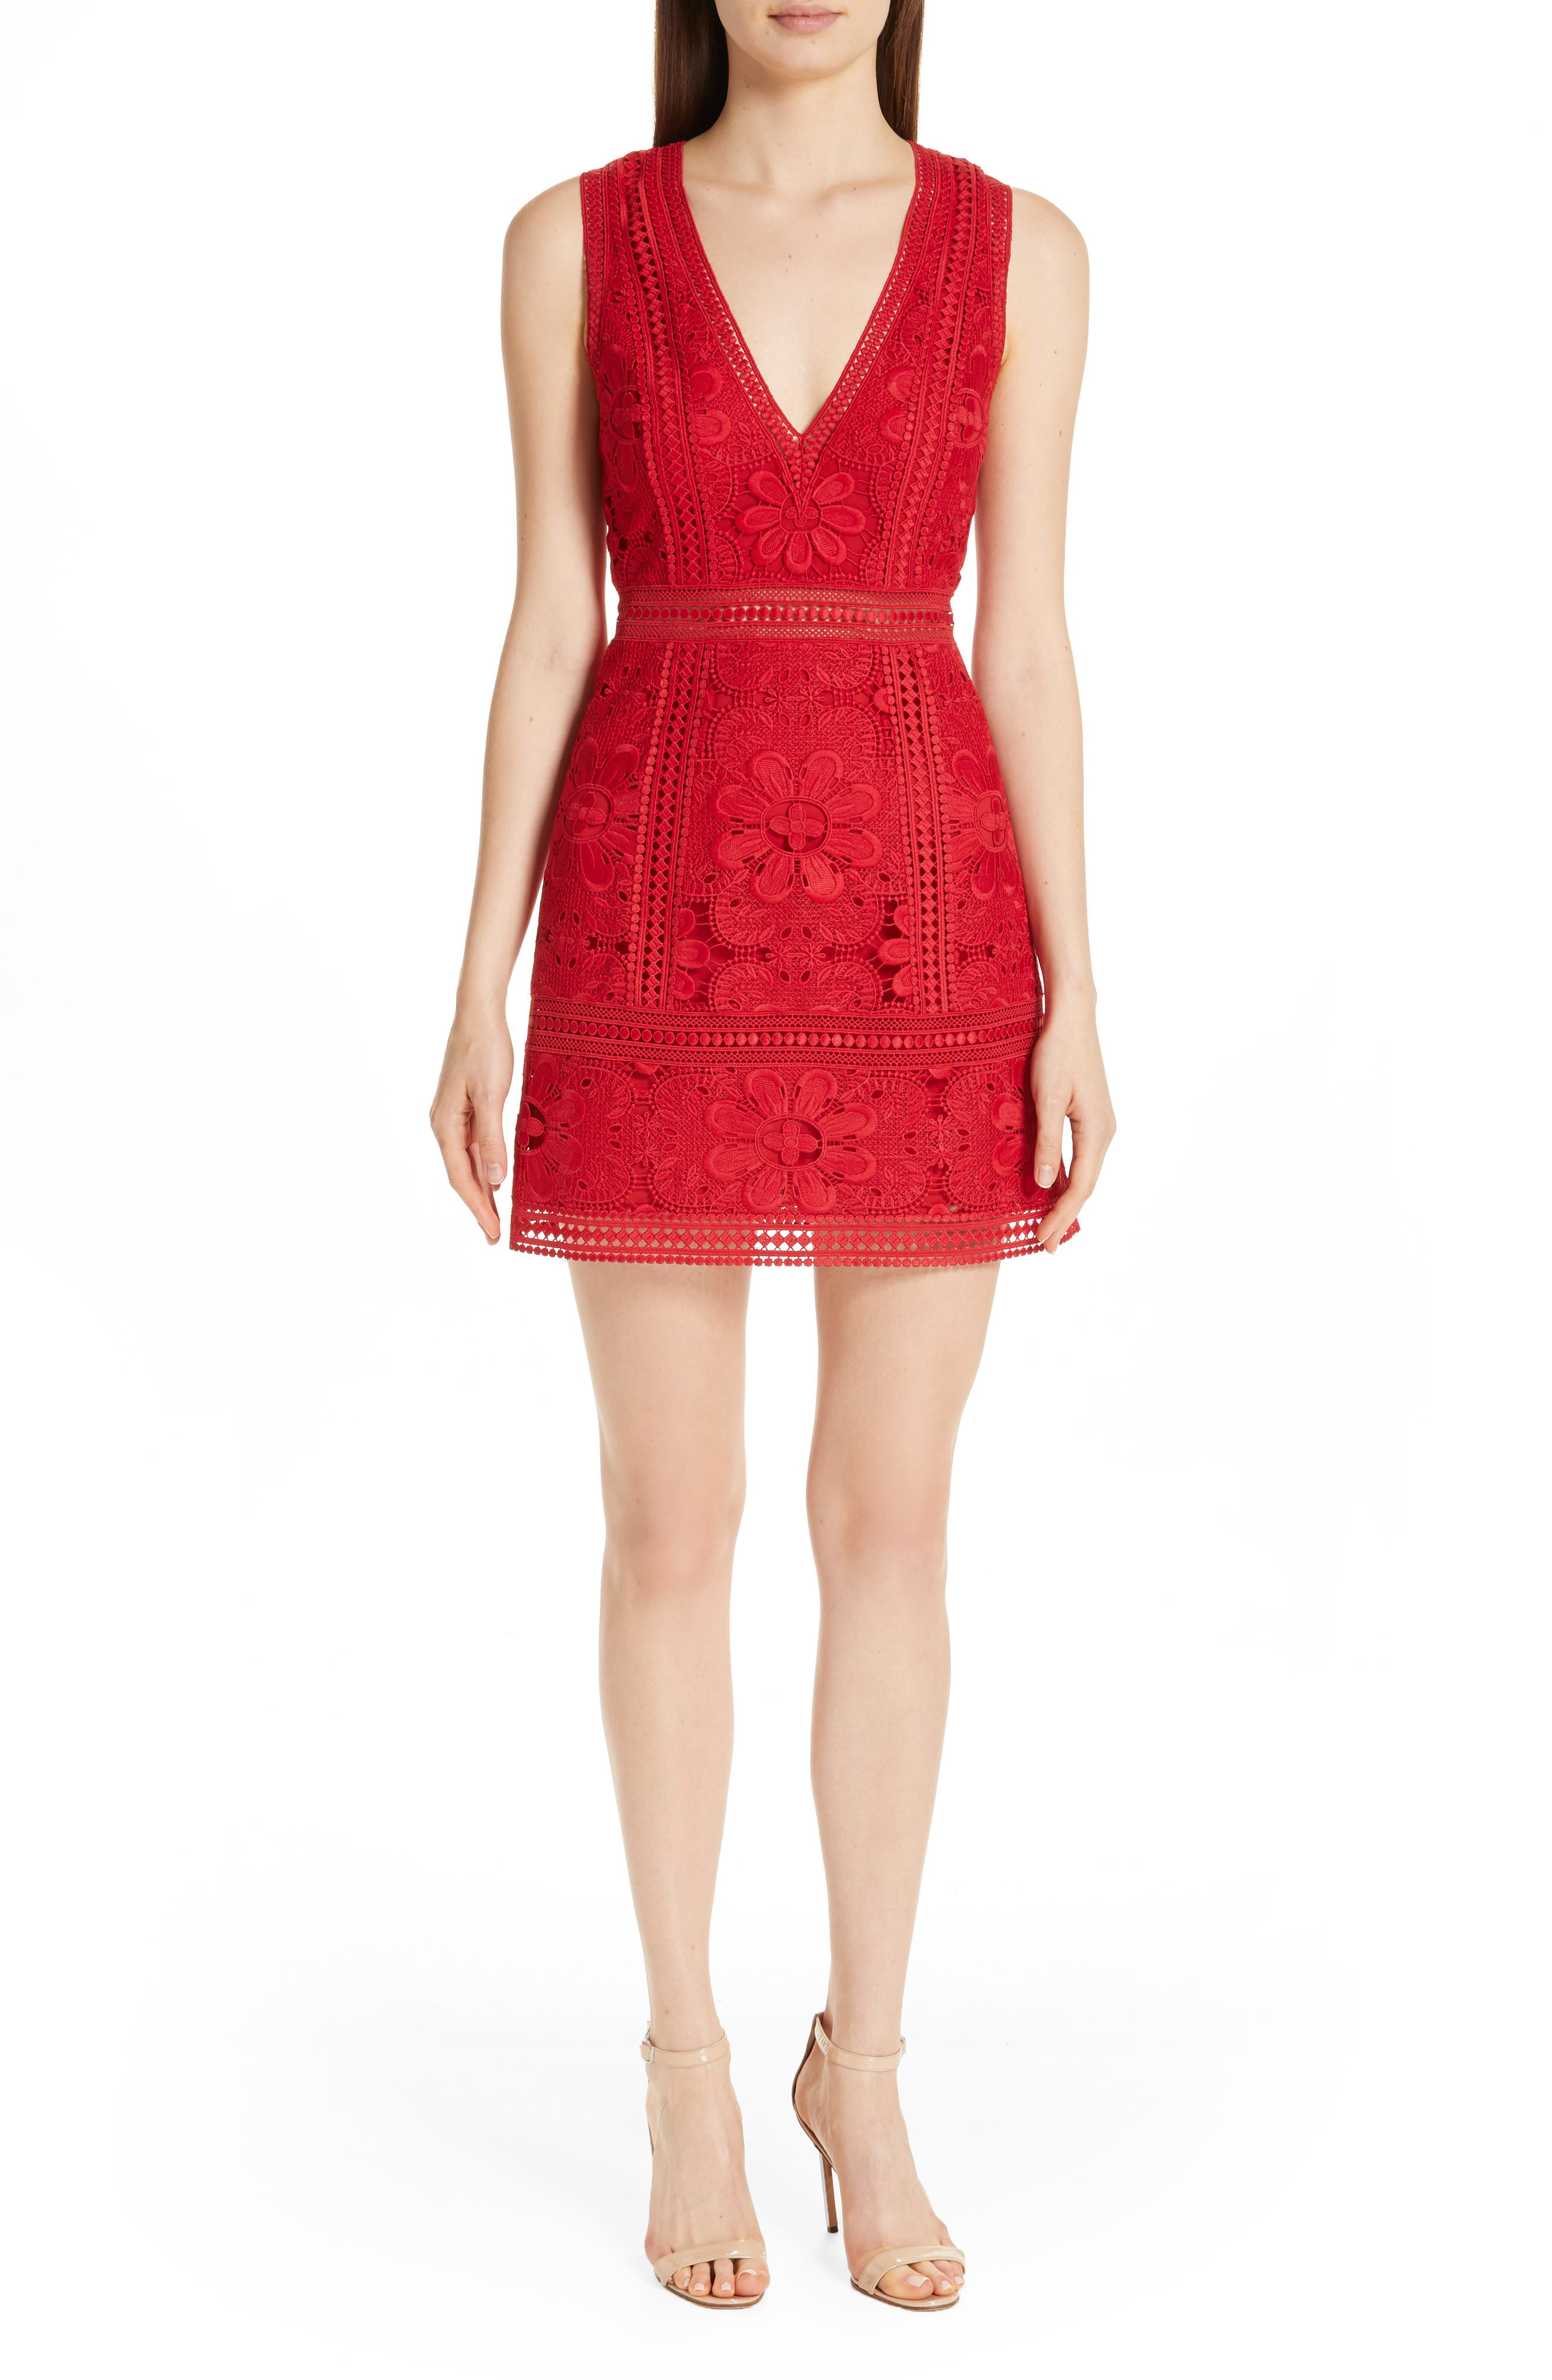 Zula Floral Eyelet Lace A-Line Dress in Ruby